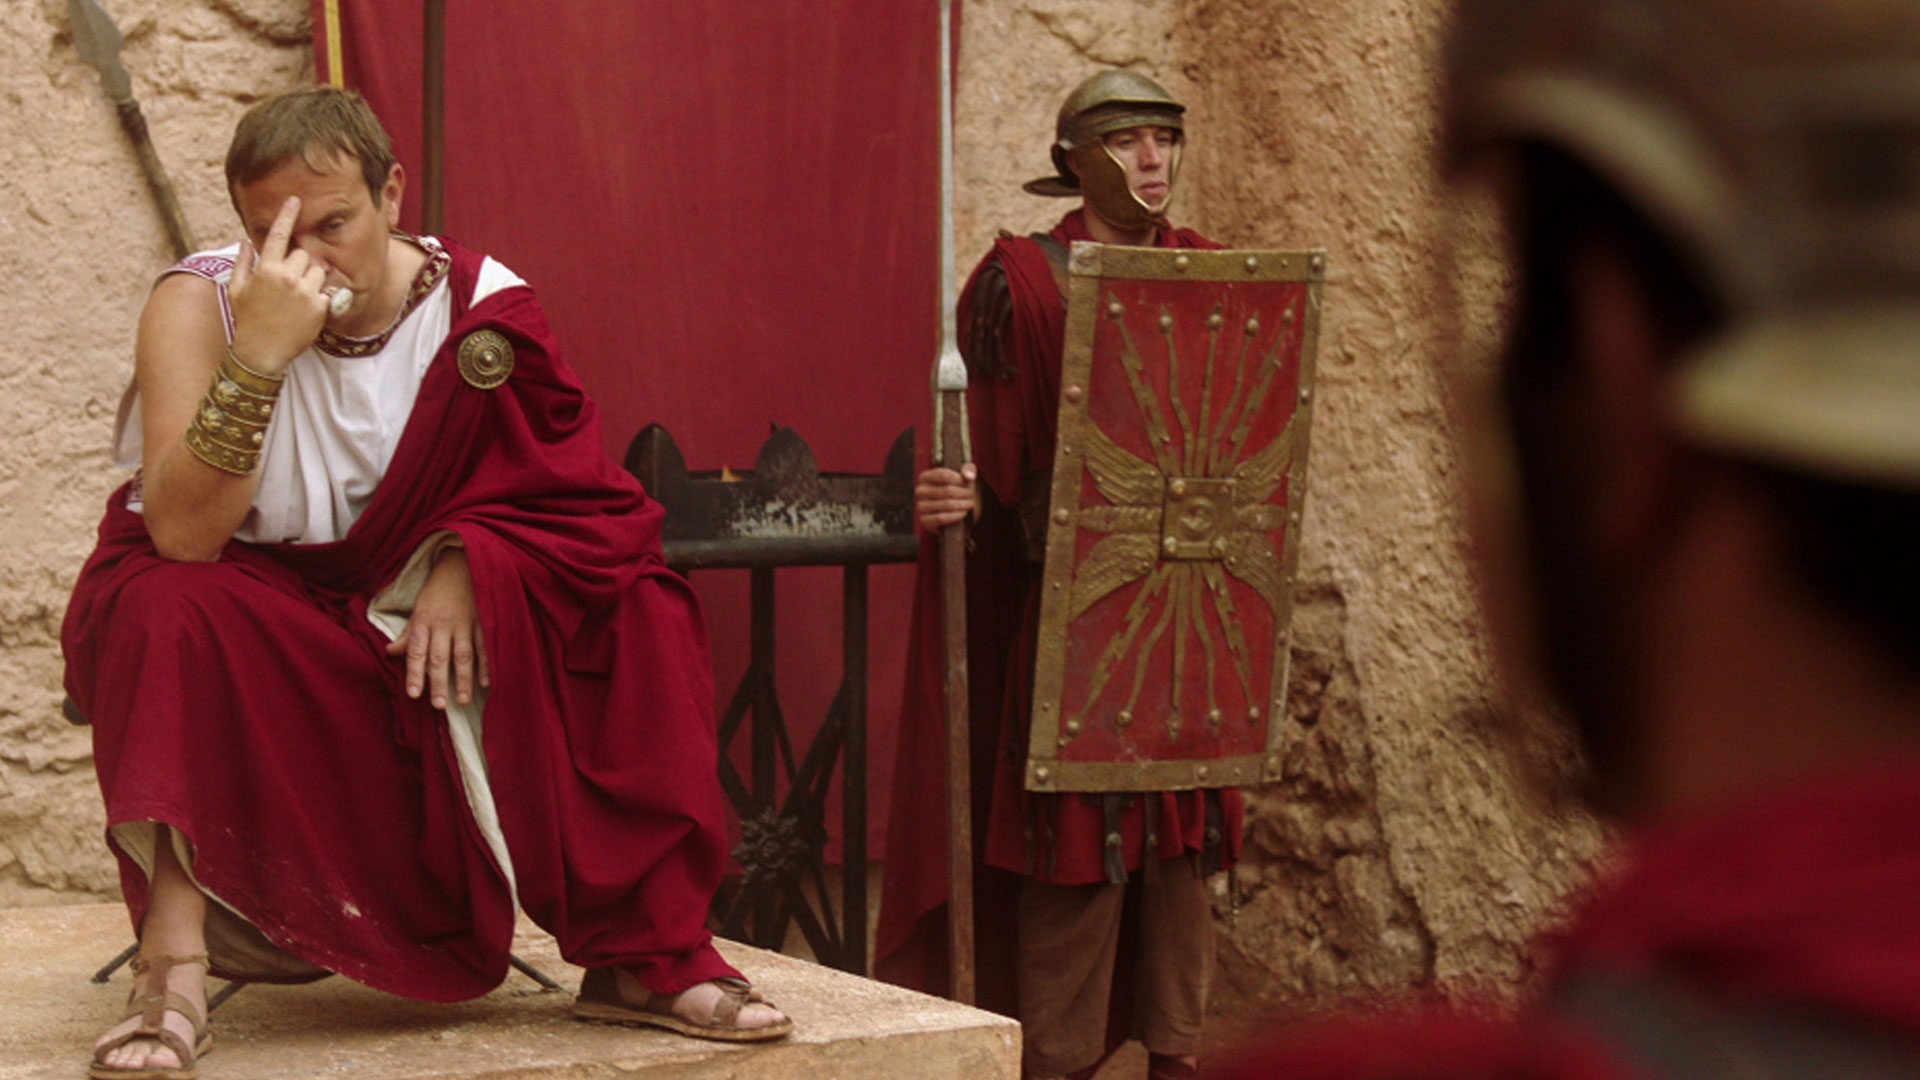 Pilate: The Trial